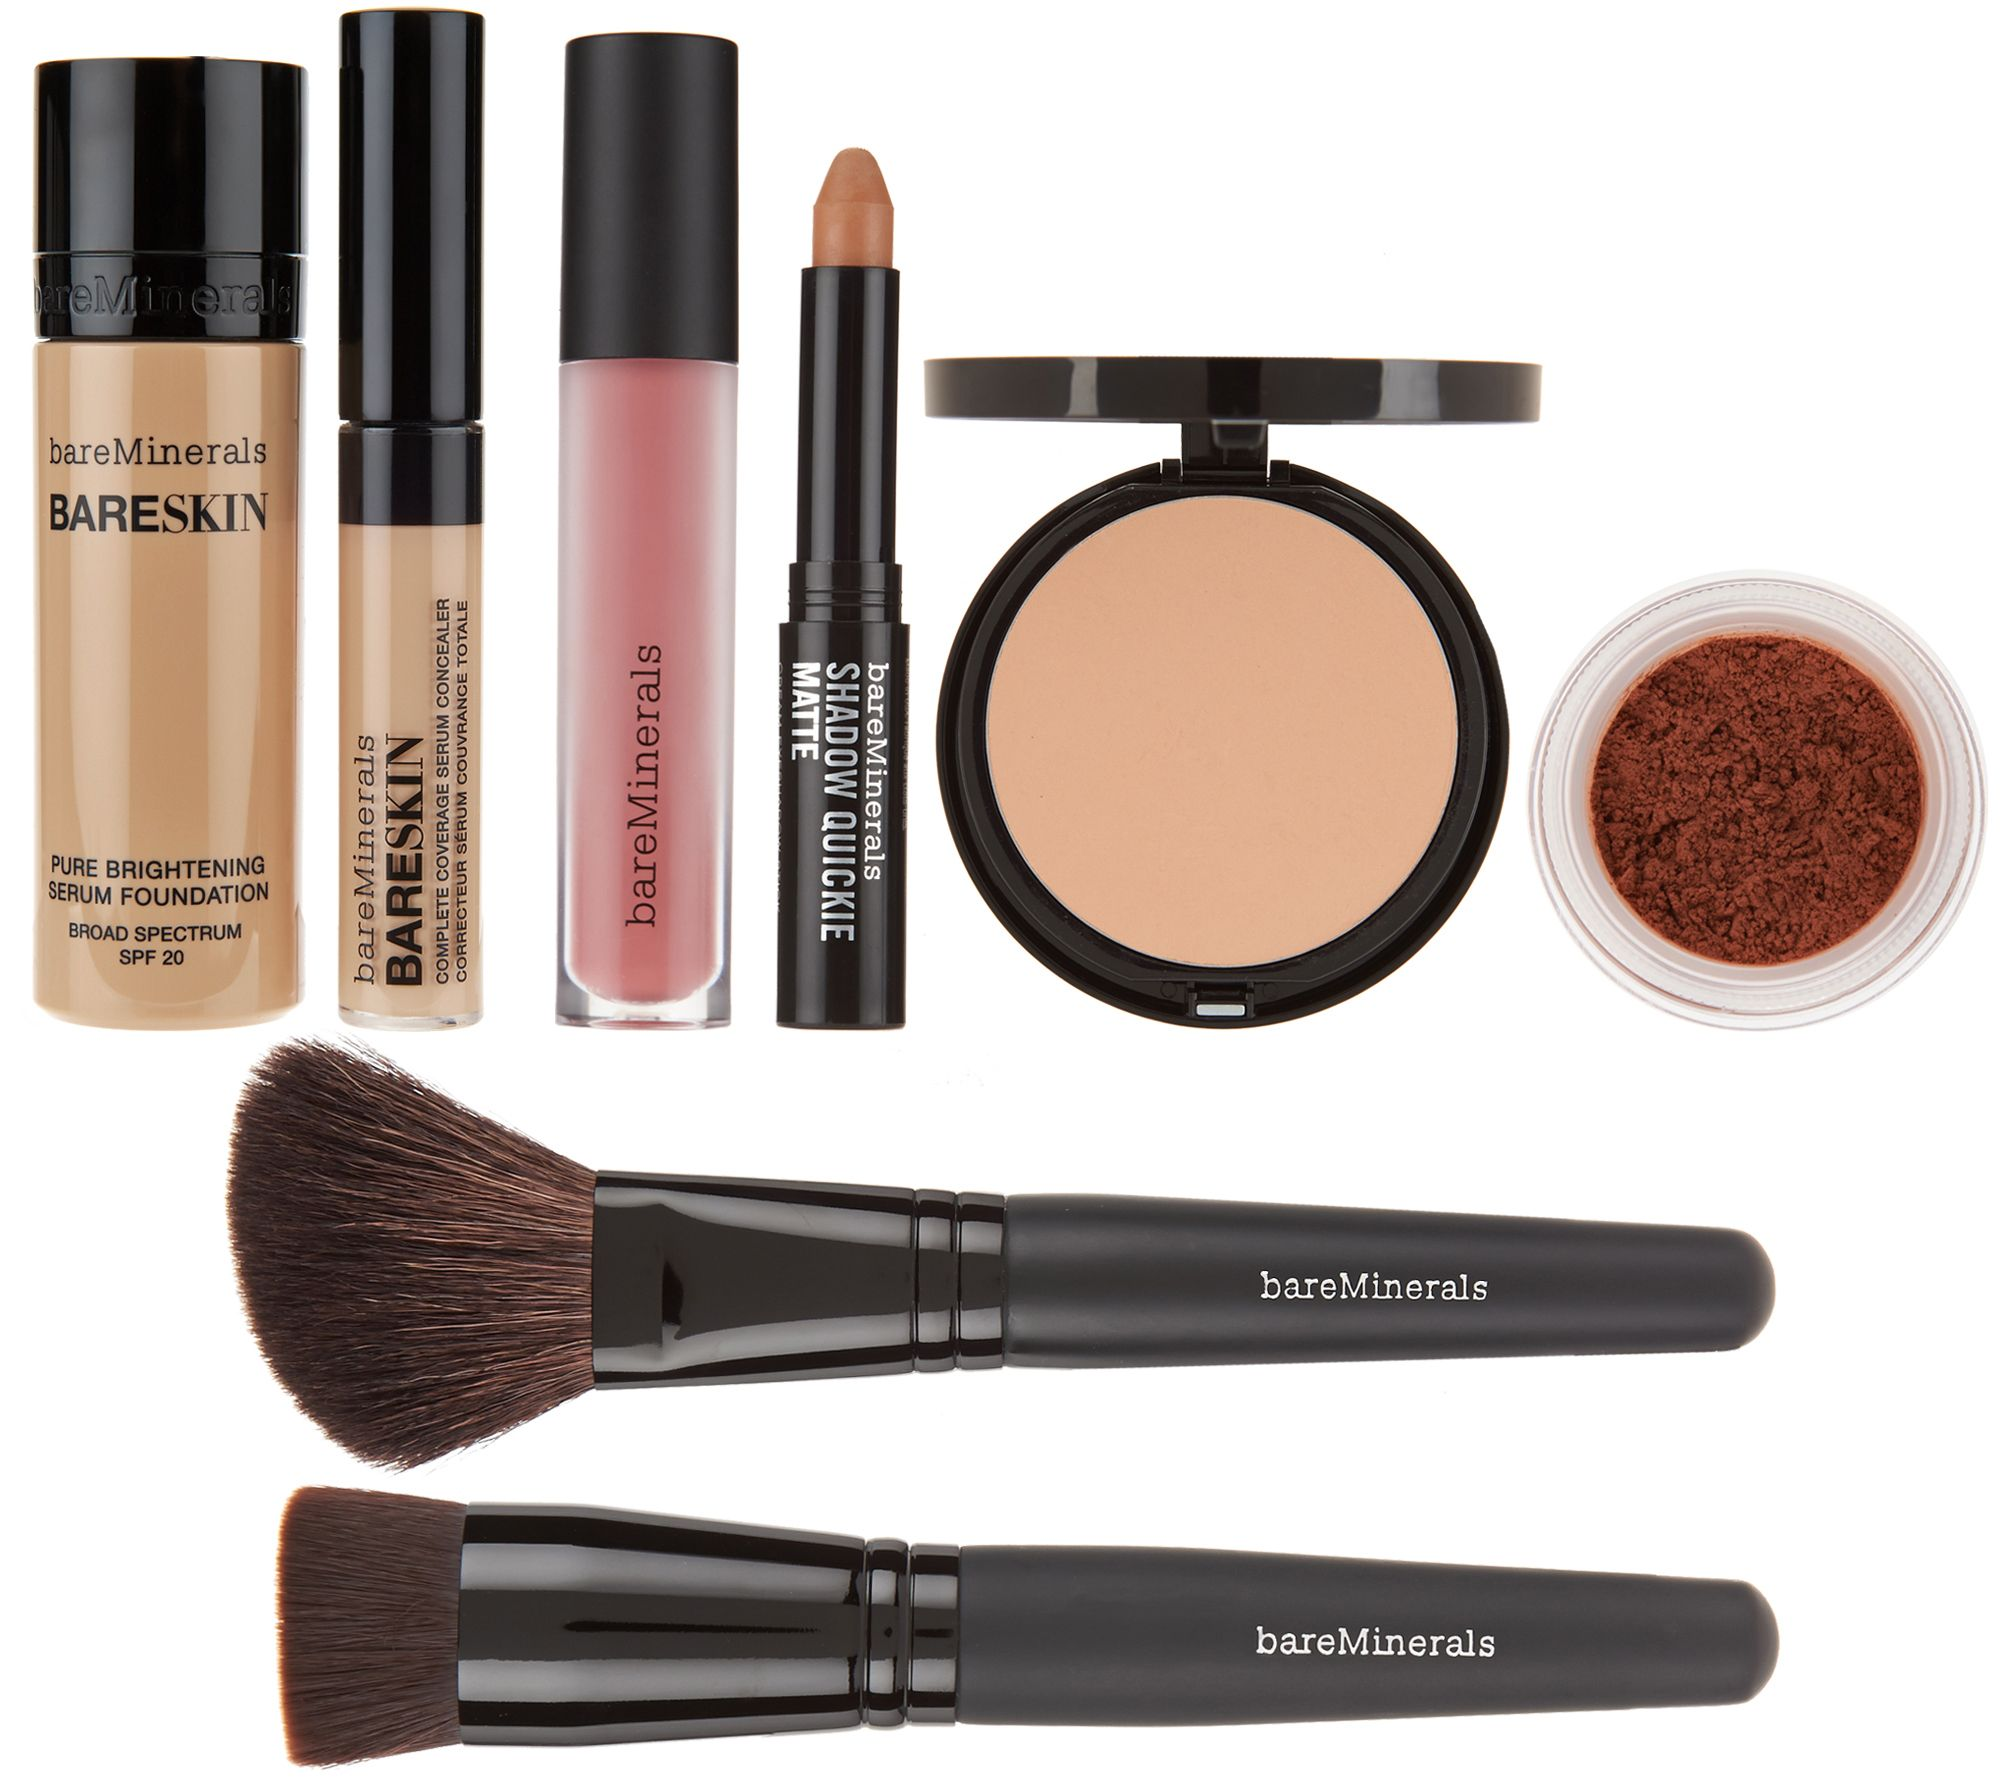 Bareminerals Bareskin Beautifully Balanced 8 Pc Collection Page 1